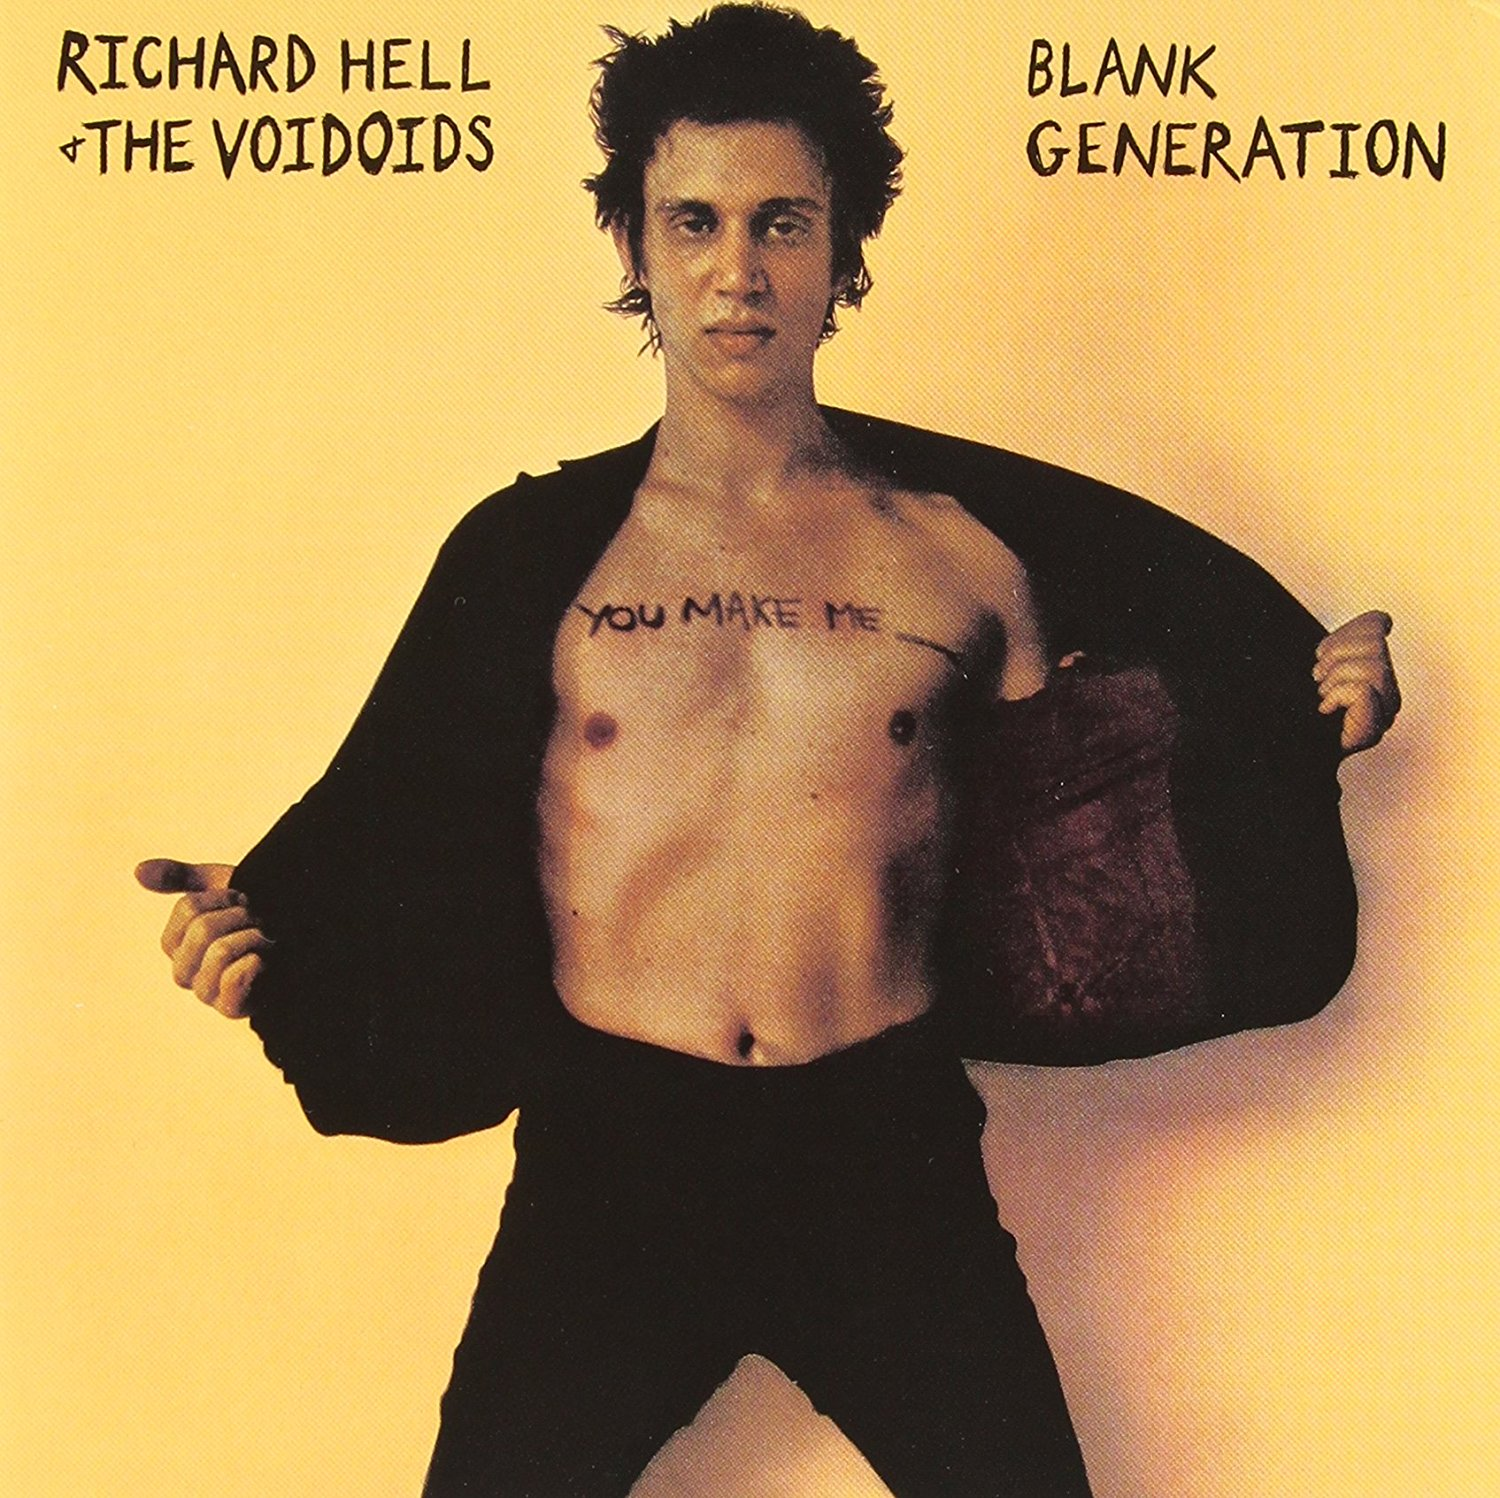 News – Richard Hell and the Voidoids